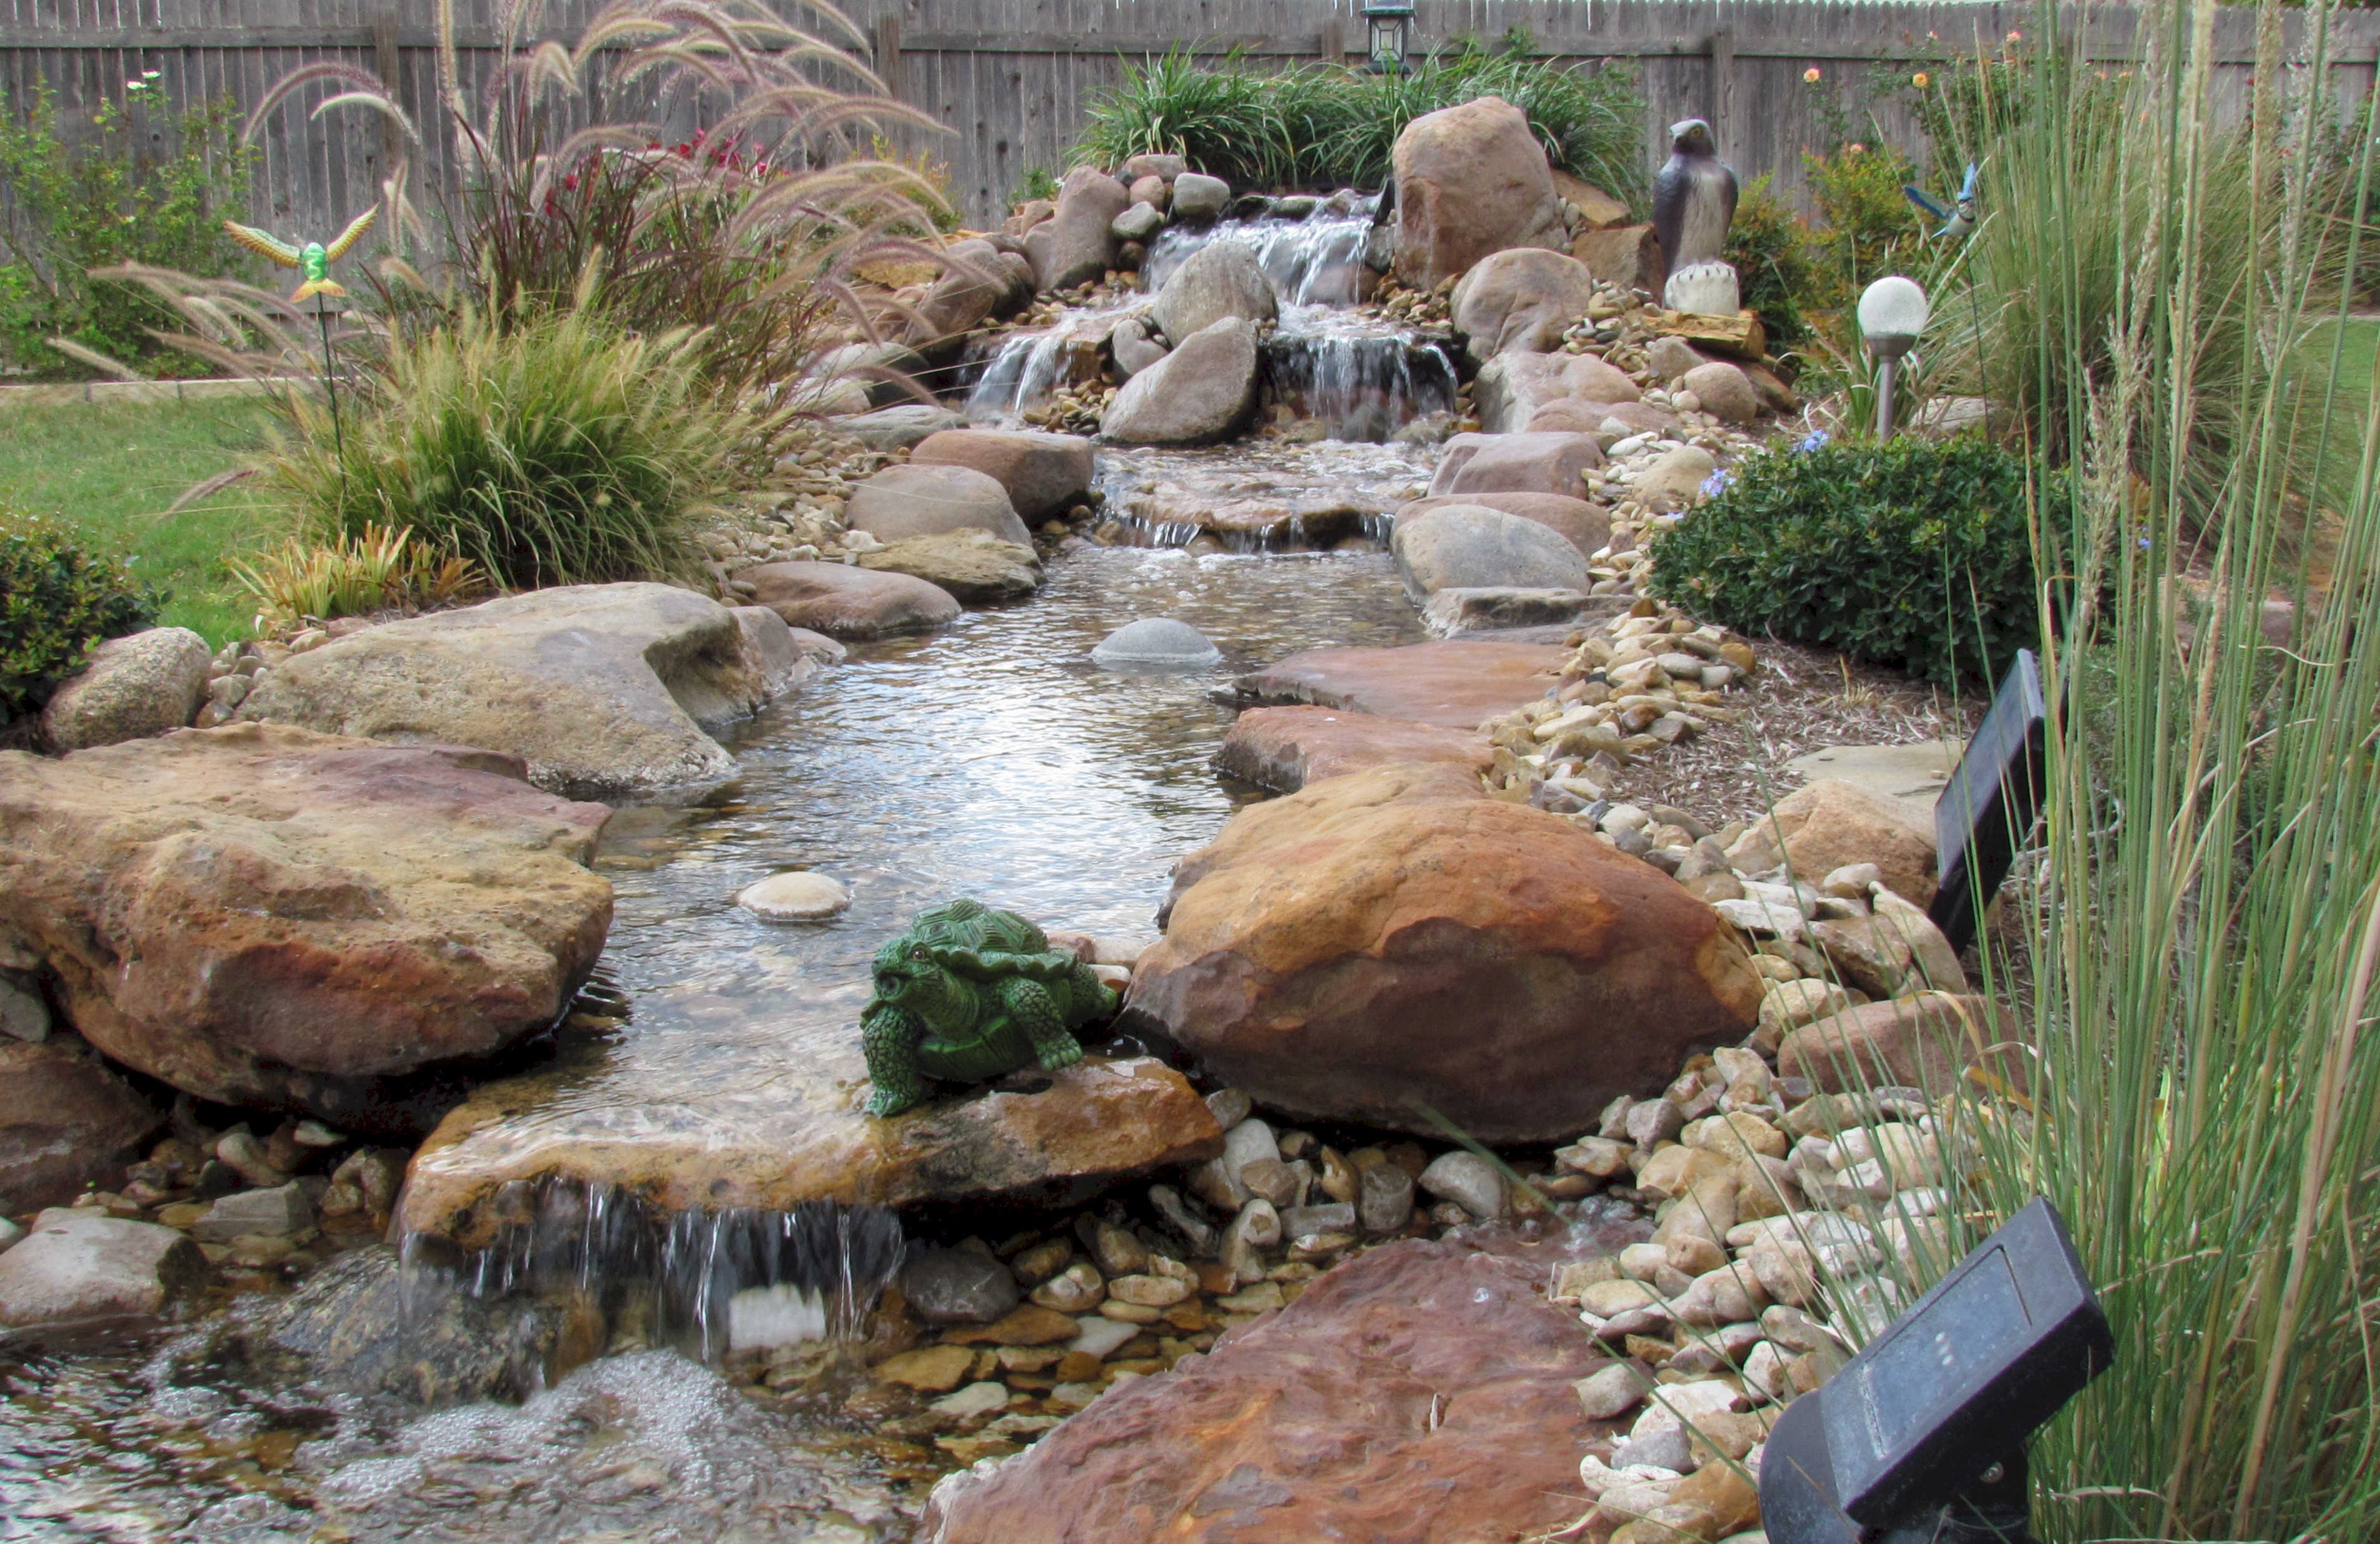 Ponds And Pondless Water Features For Sale - The Pond ... on Small Backyard Pond With Waterfall id=68165